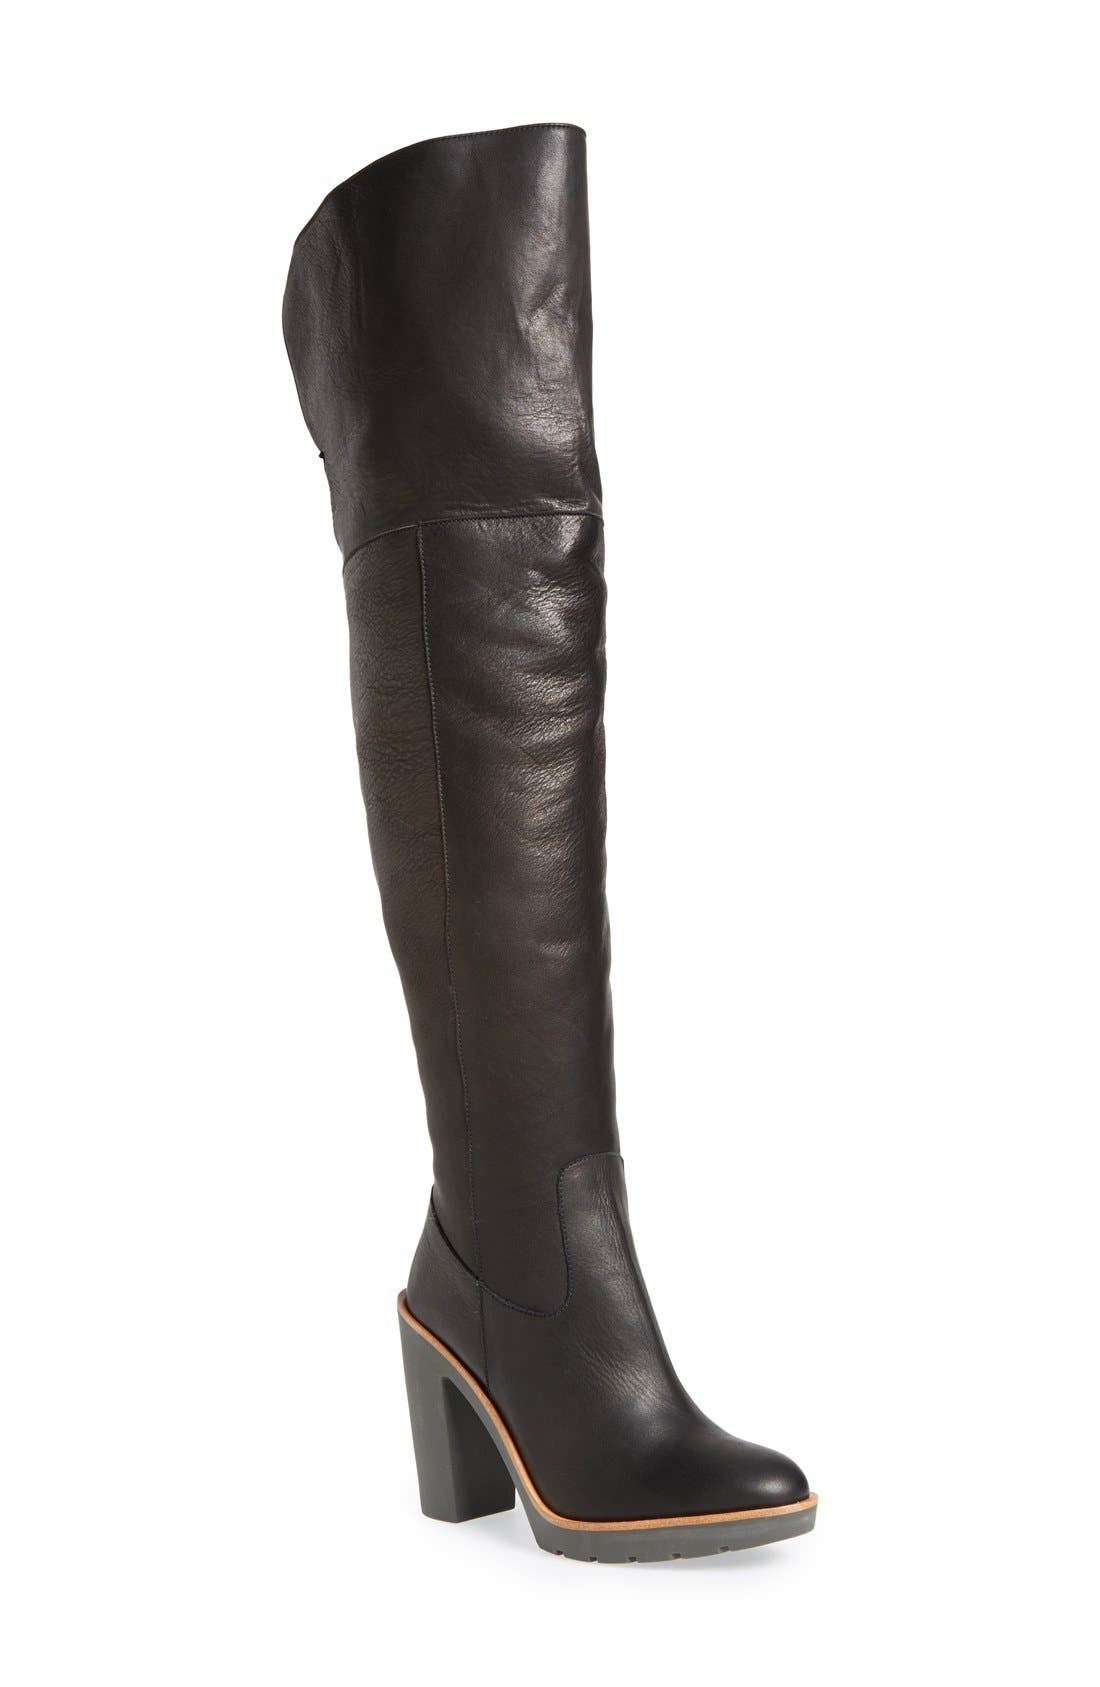 Alternate Image 1 Selected - kate spade new york 'gabby' genuine shearling linedover the knee boot (Women)